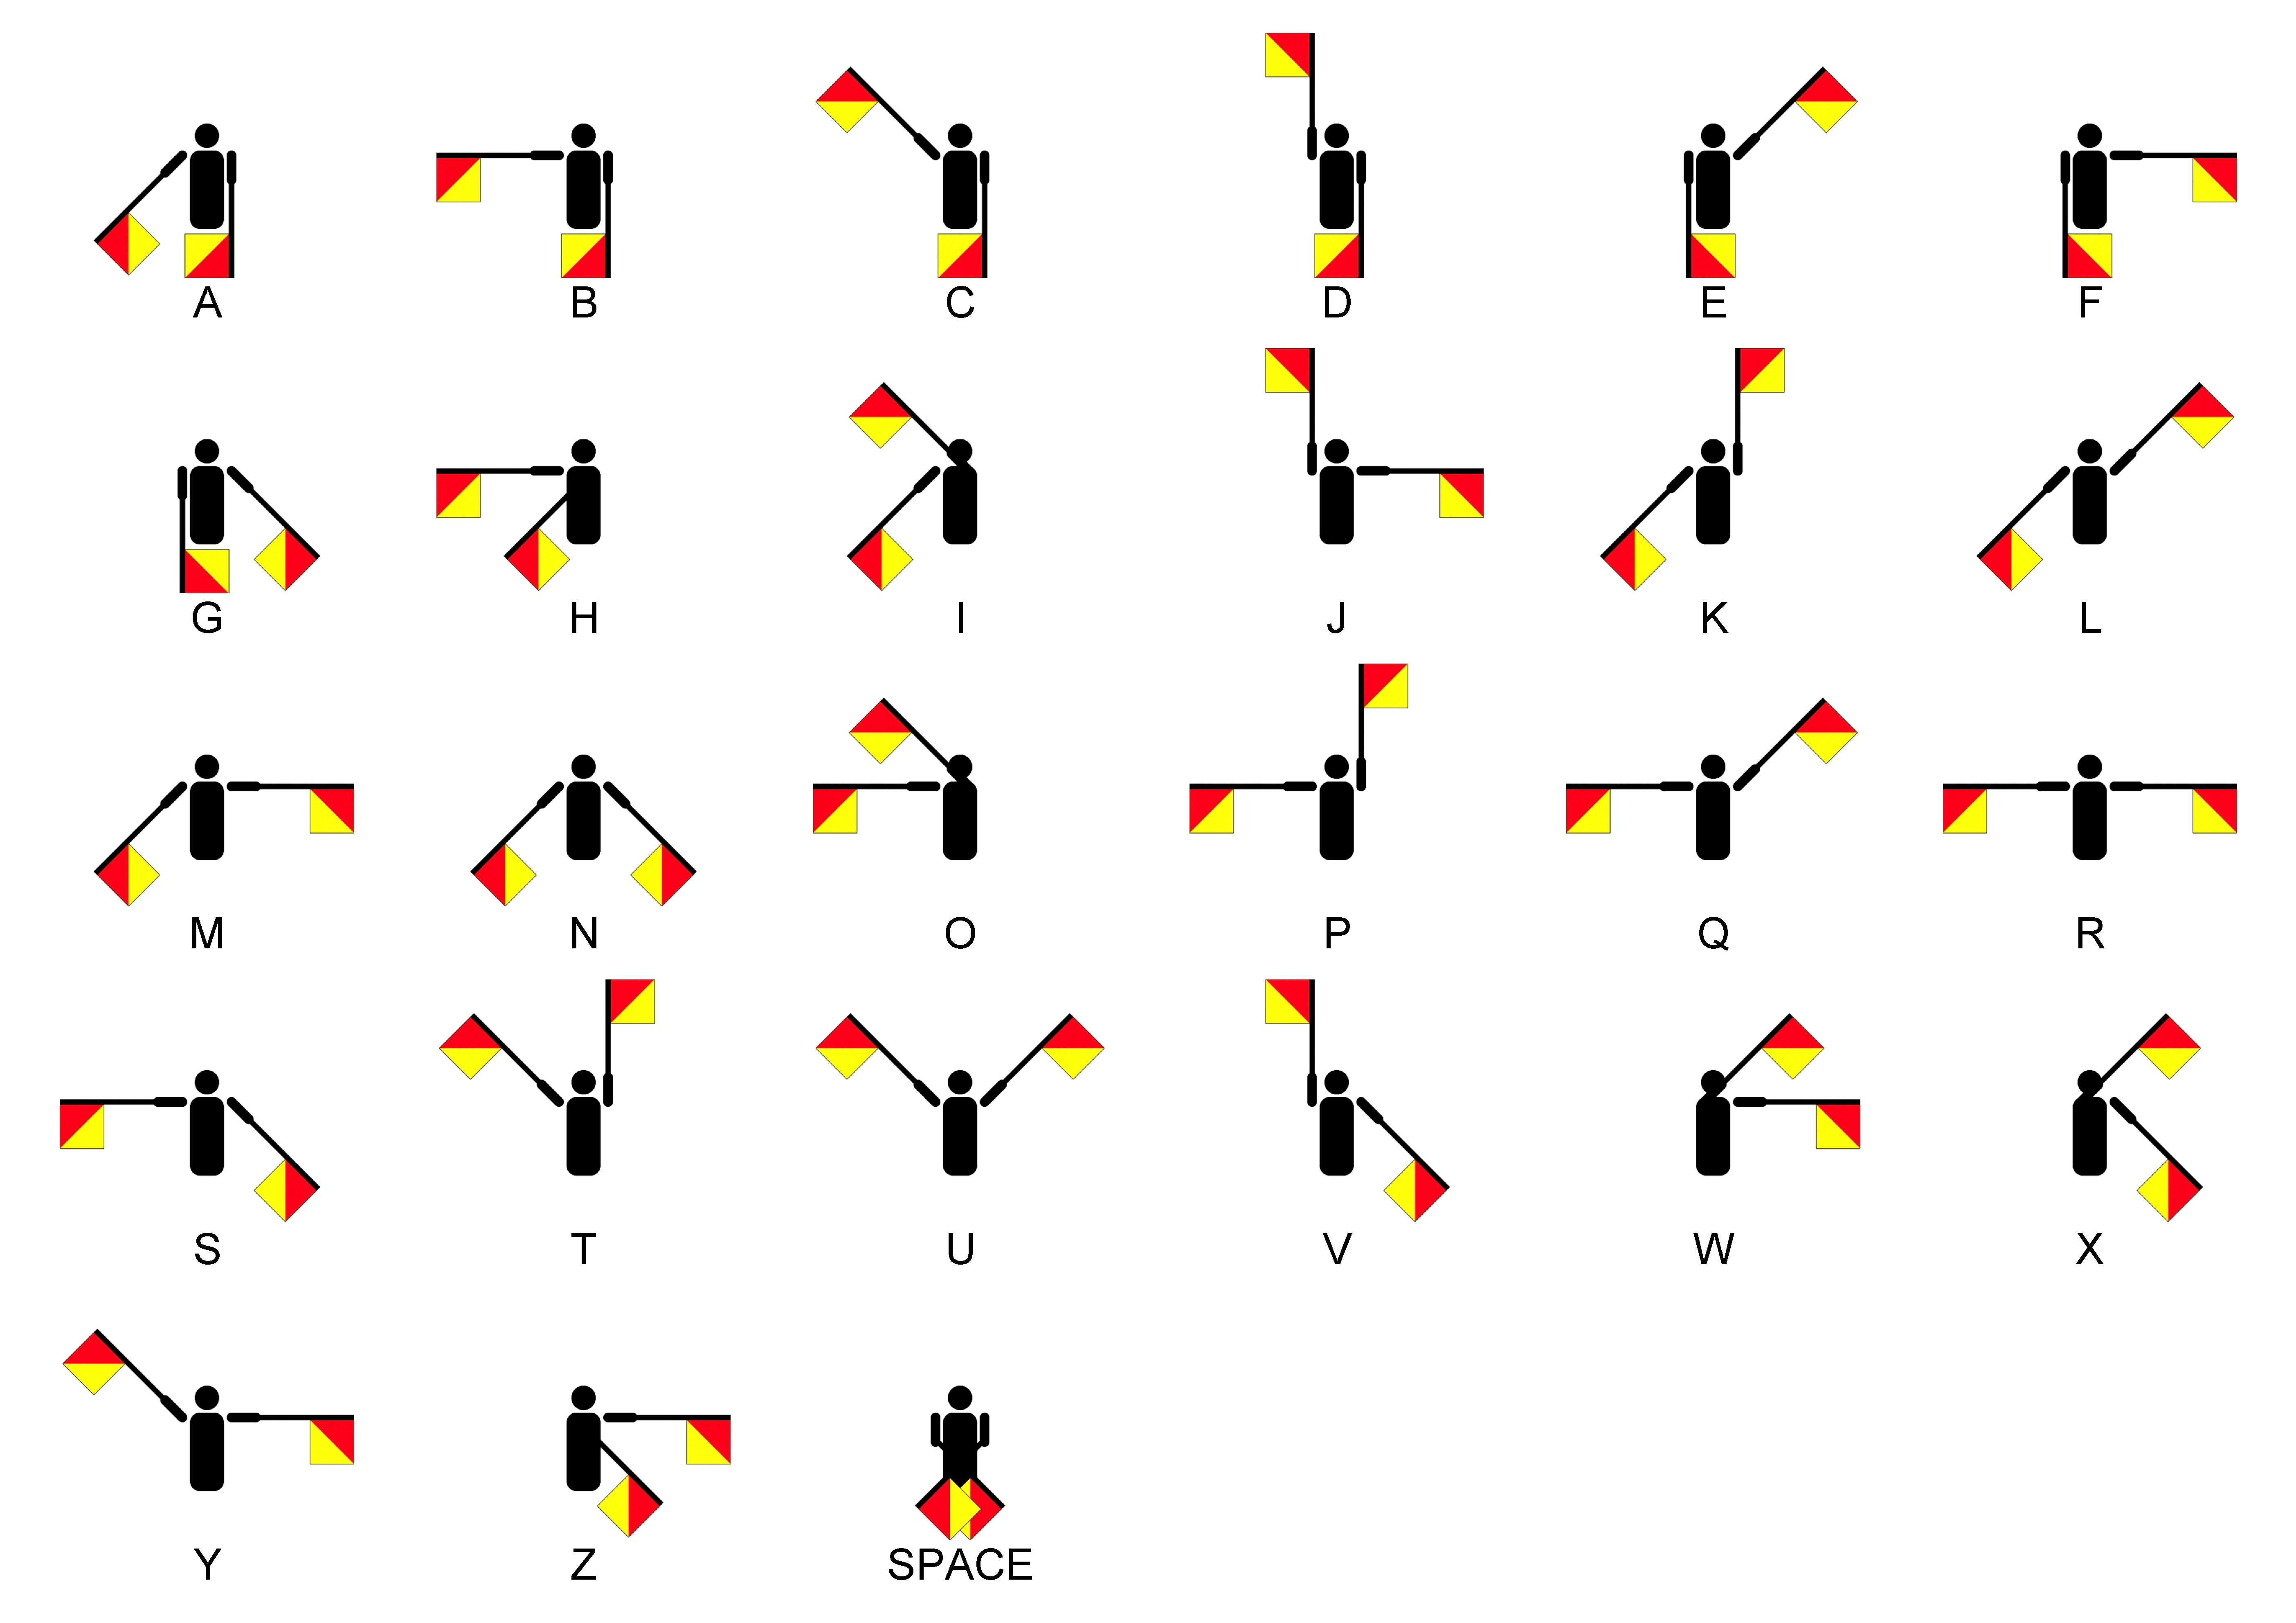 Code For Letters Of The Alphabet.File Semaphore Signals A Z Jpg Wikimedia Commons